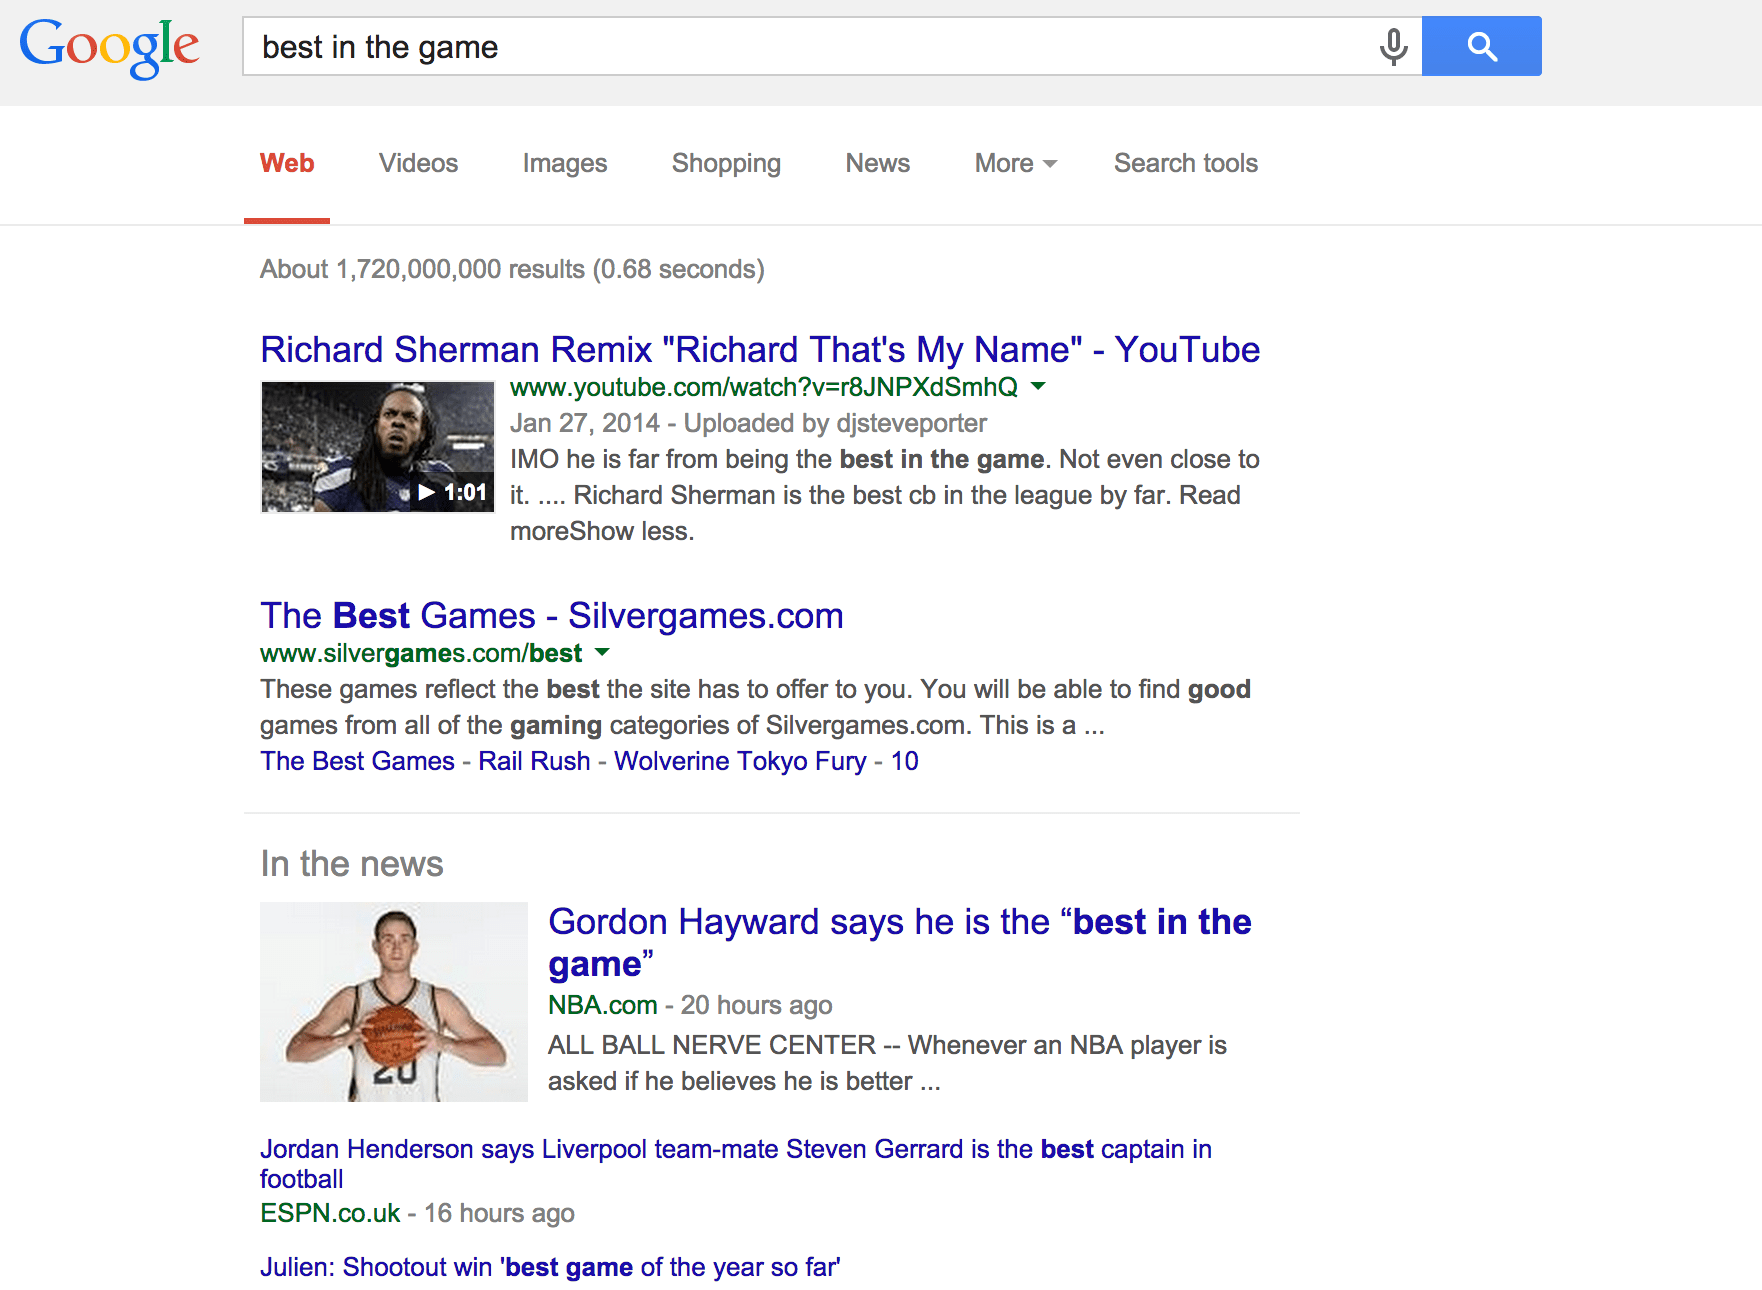 Showing up in Google News